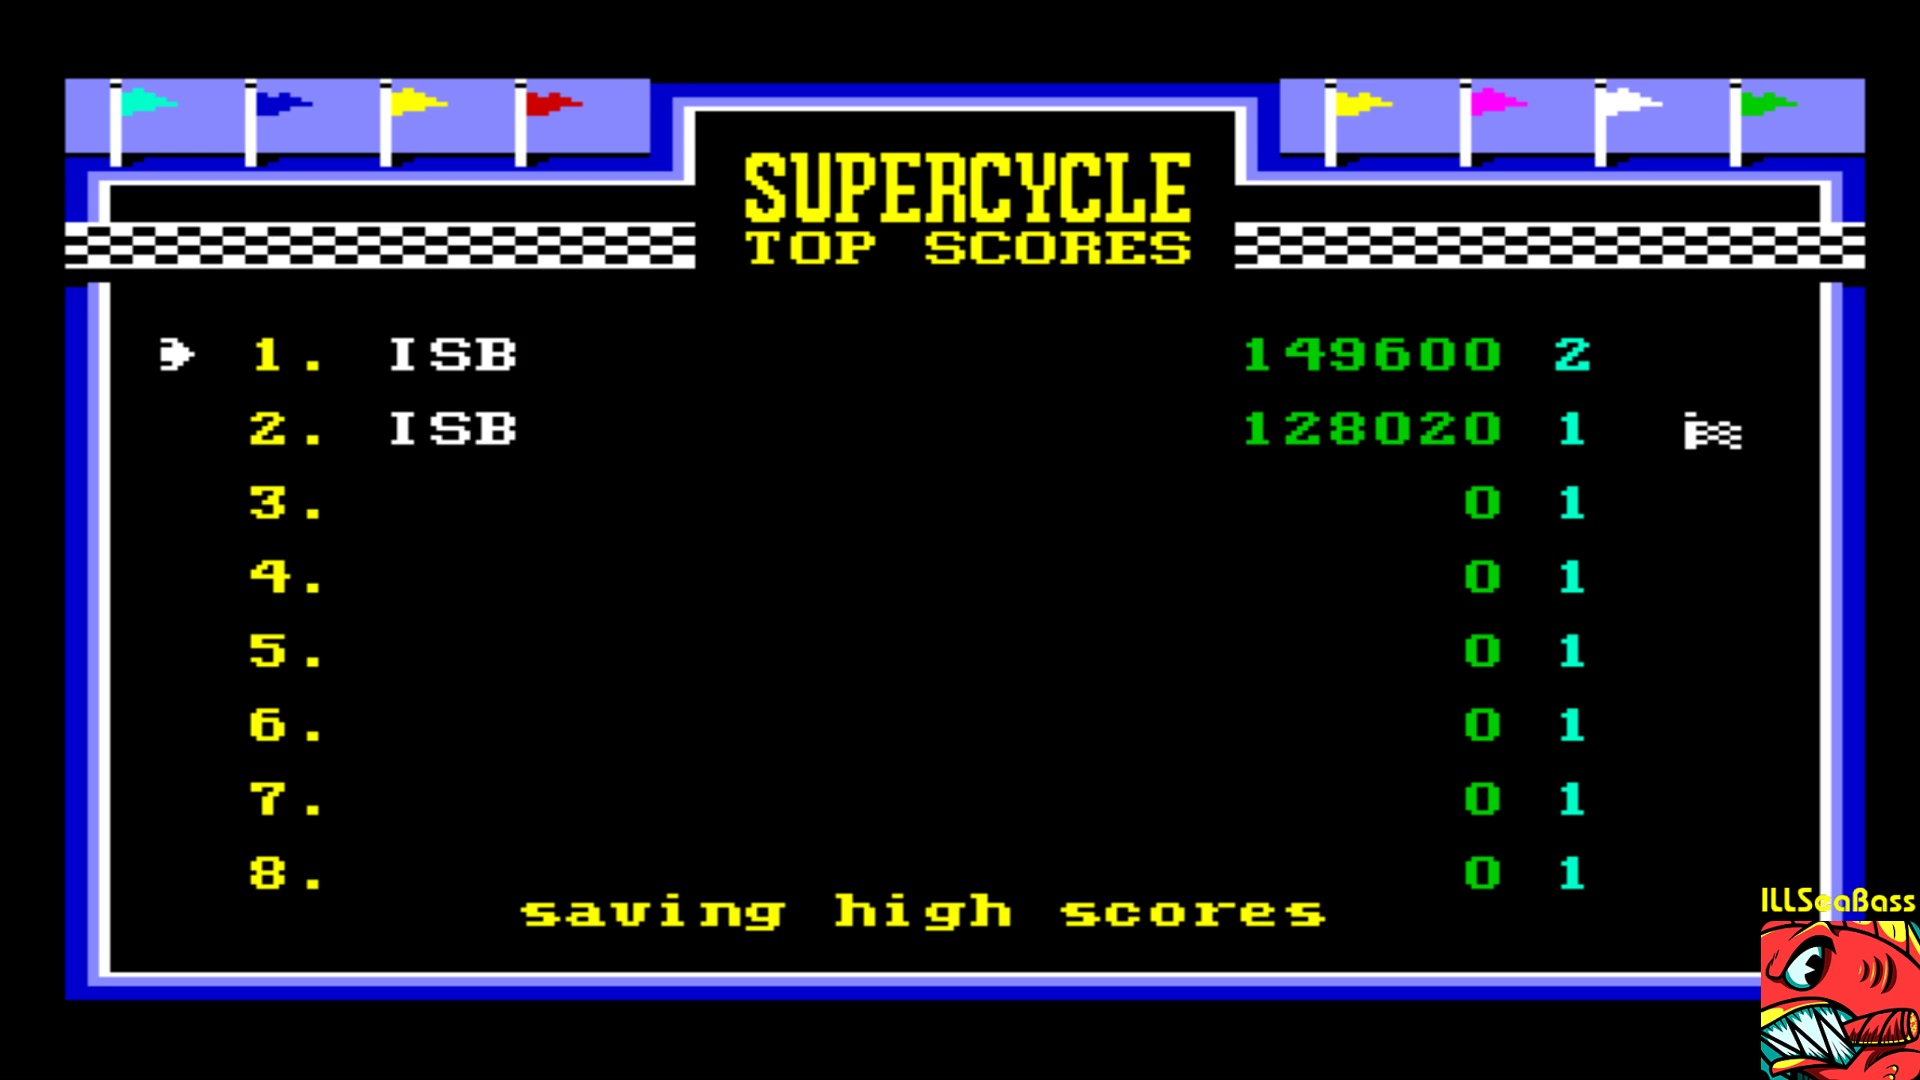 ILLSeaBass: Super Cycle [Level 2 Start] (Commodore 64 Emulated) 149,600 points on 2018-01-16 20:15:11